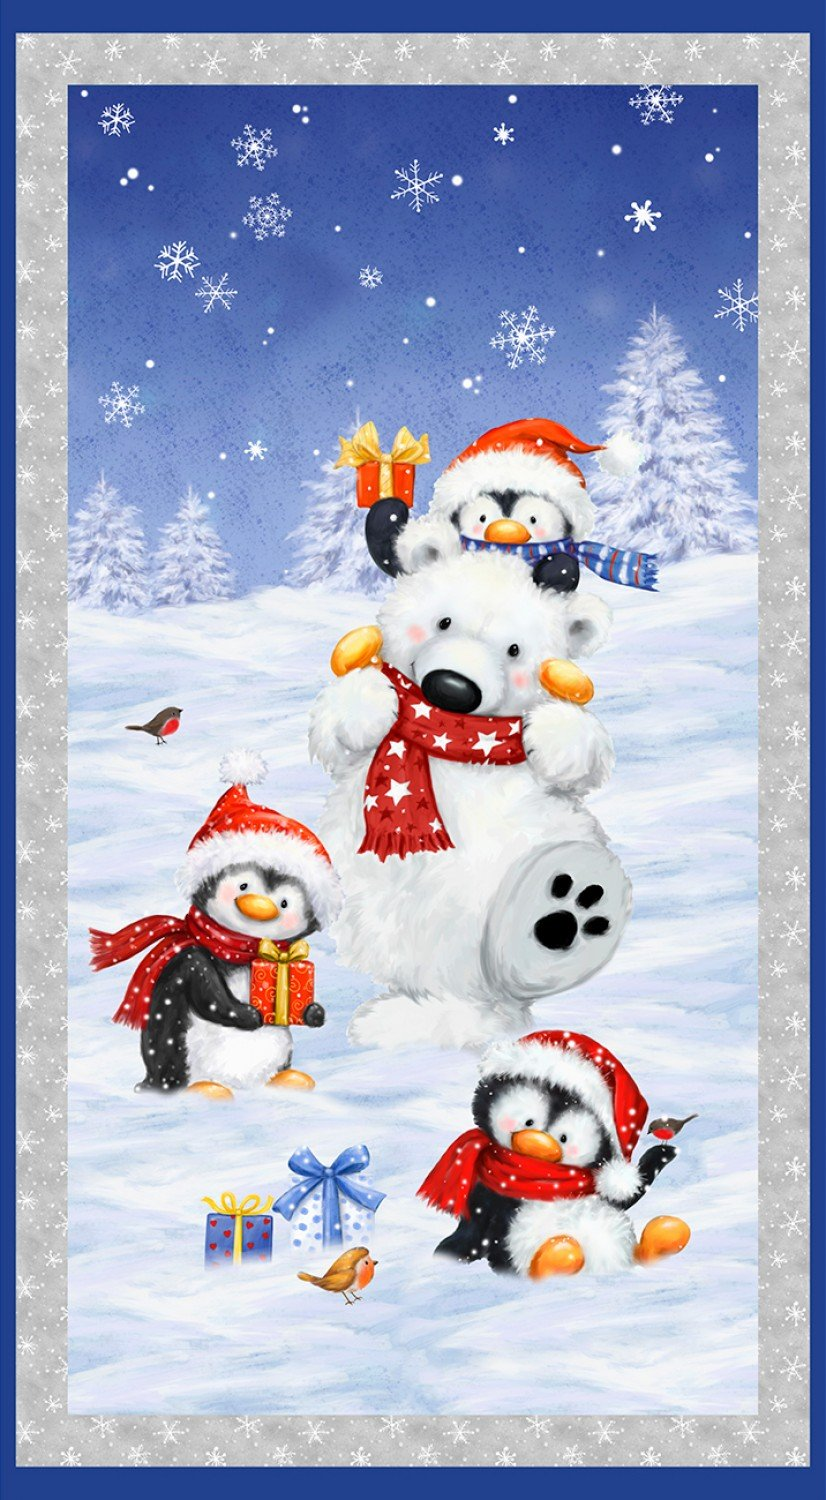 Snow What Fun Panel by Wilmington Prints 45151-143